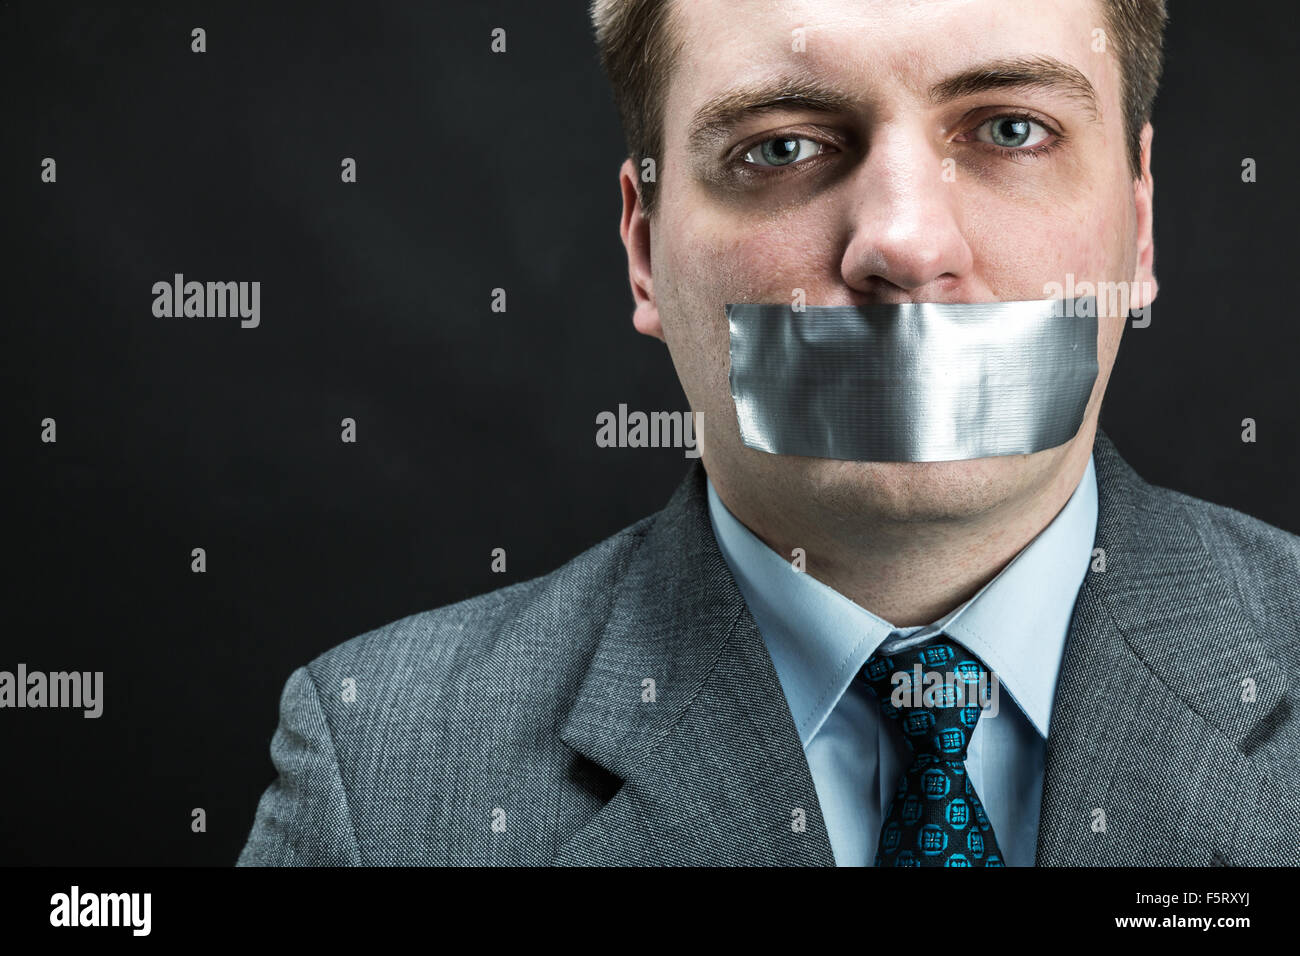 Man with mouth covered by masking tape preventing speech, studio shoot - Stock Image